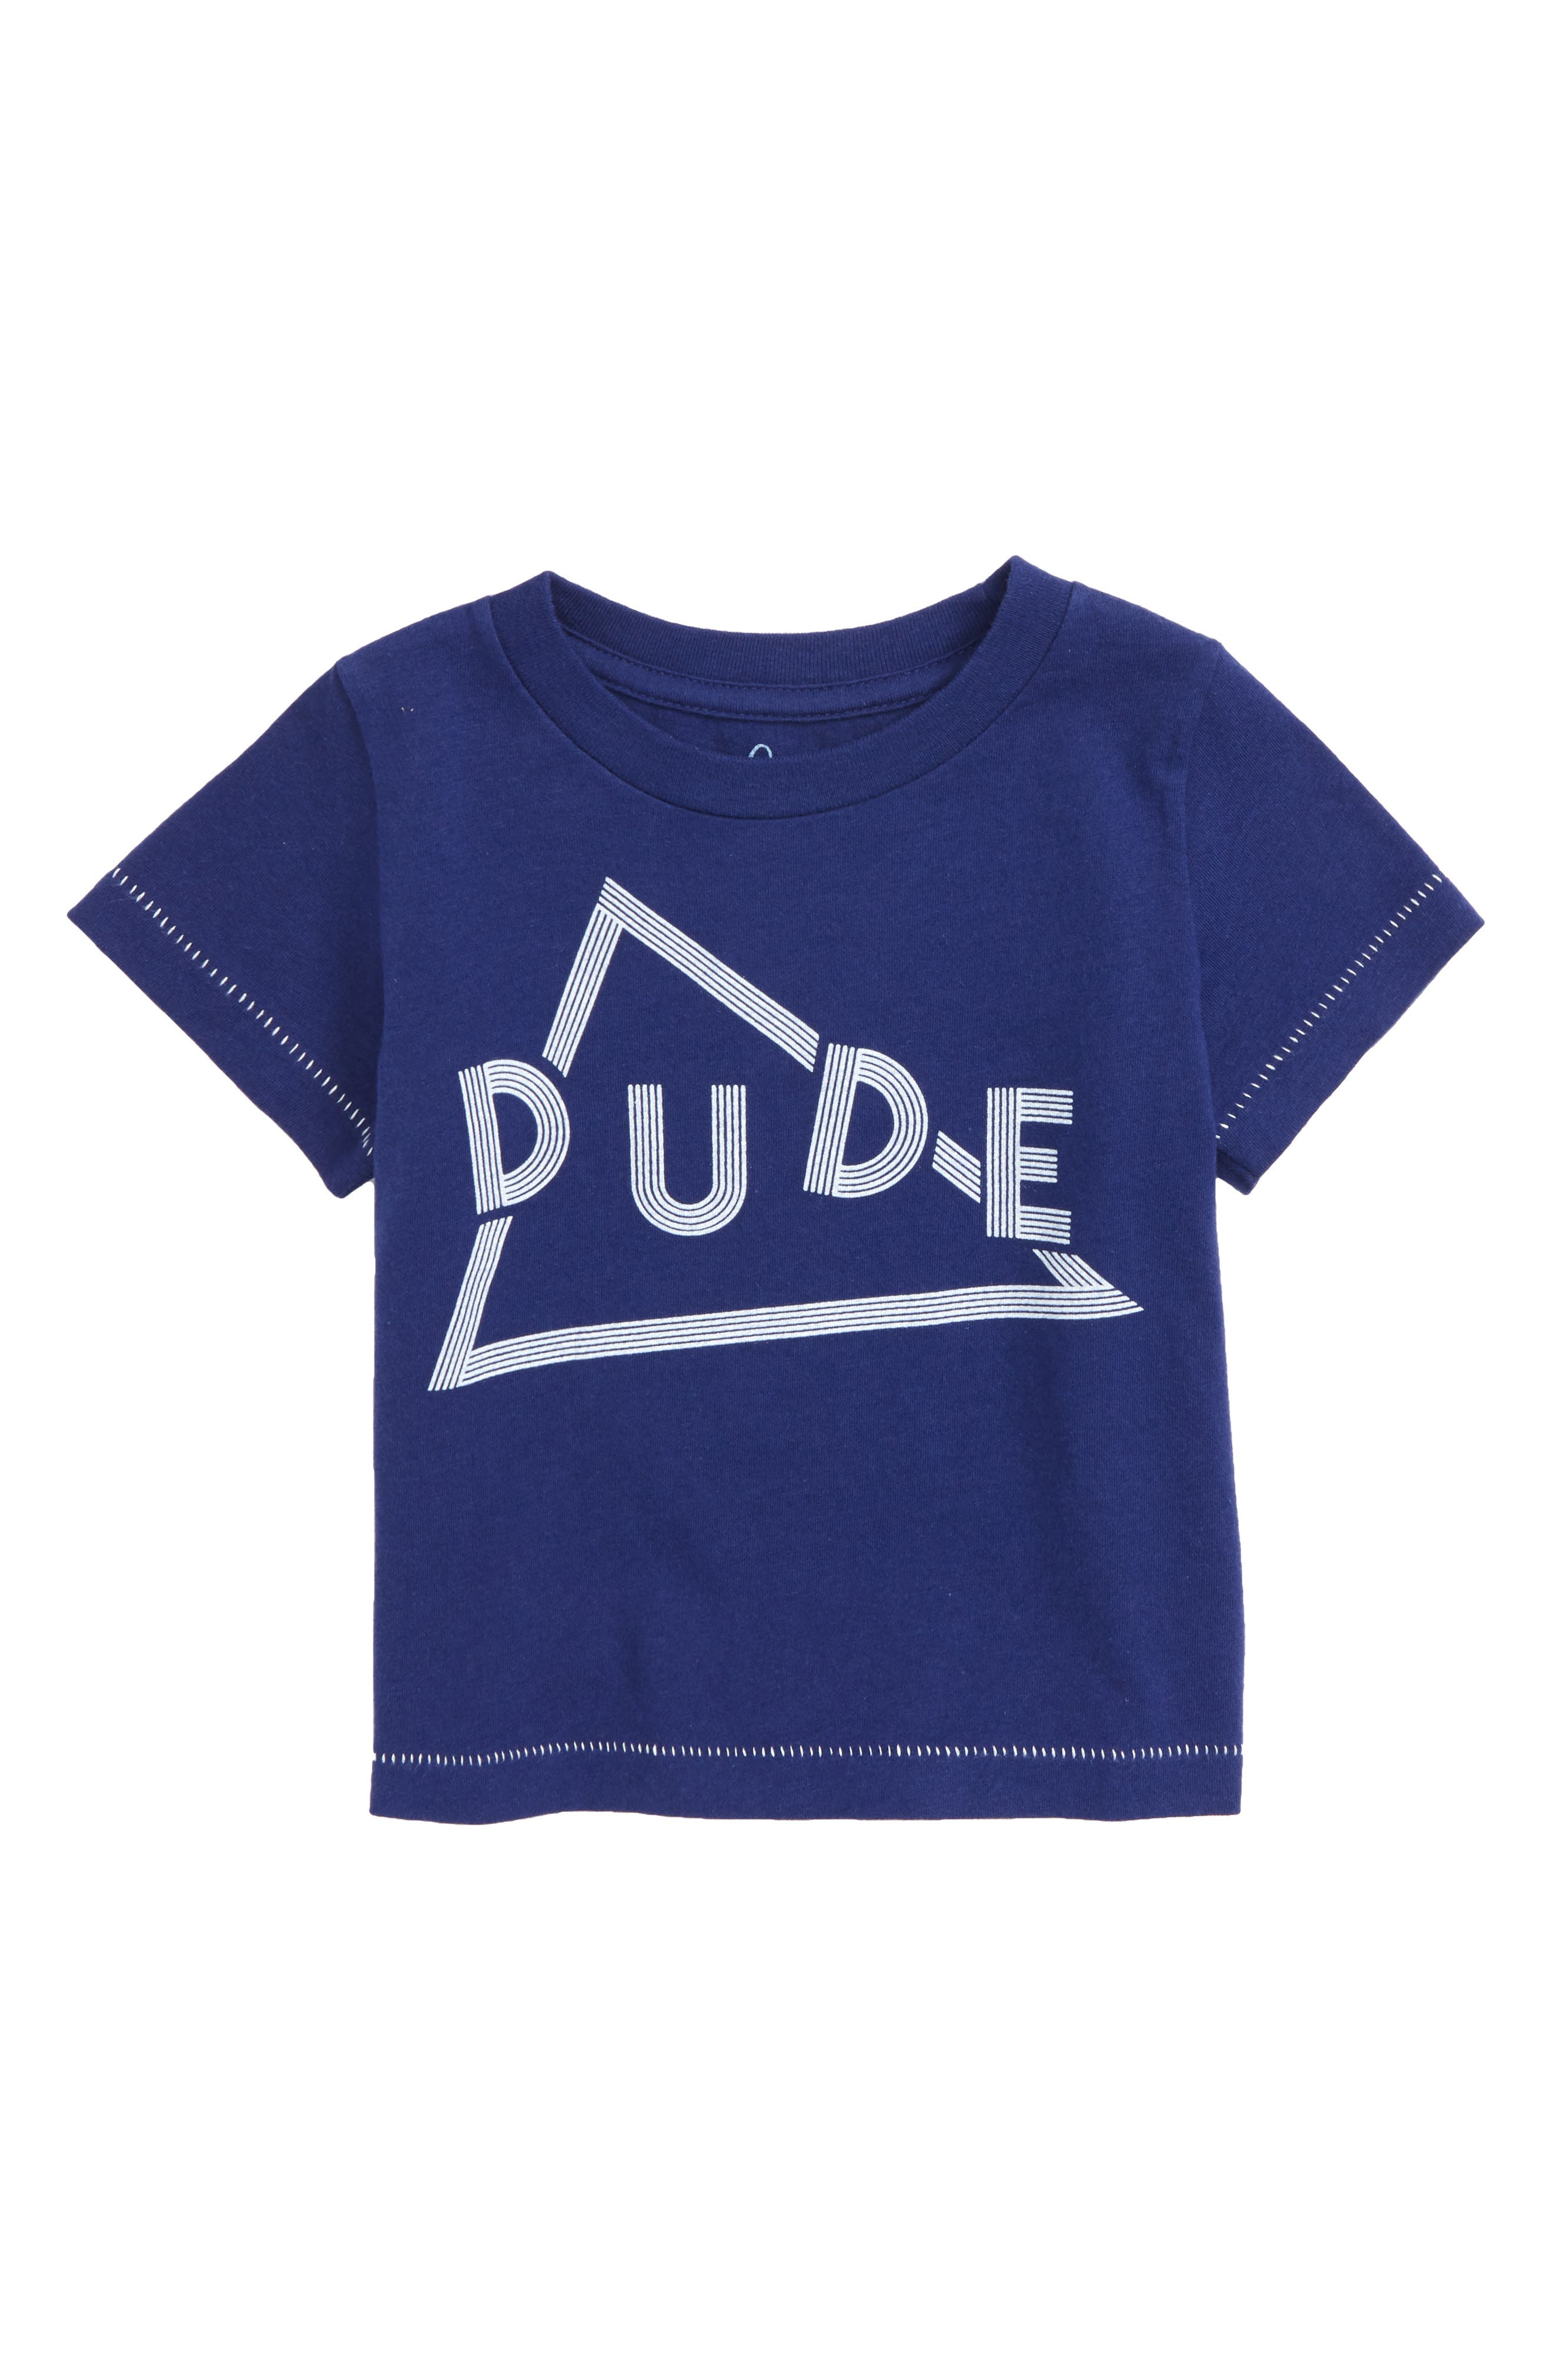 Dude Graphic T-Shirt,                         Main,                         color, 410